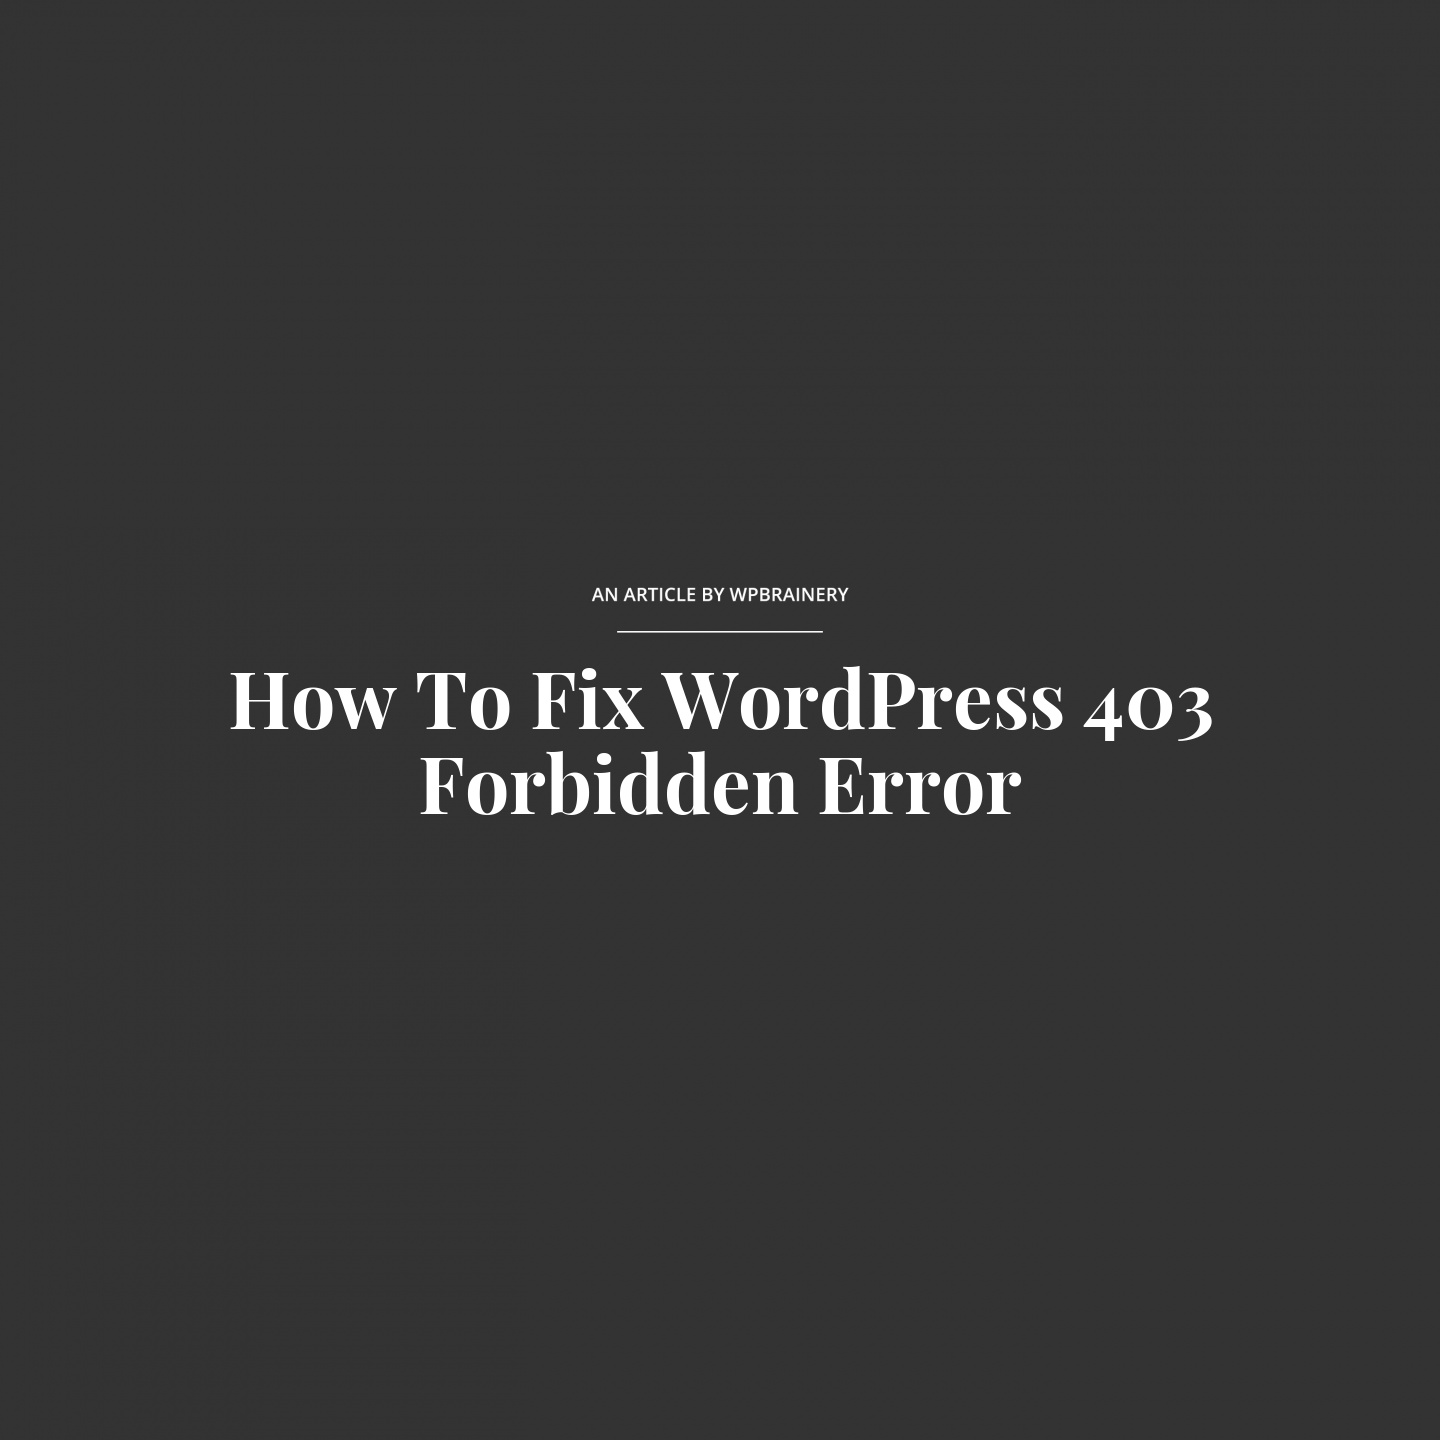 403 Forbidden: How To Fix WordPress 403 Forbidden Error